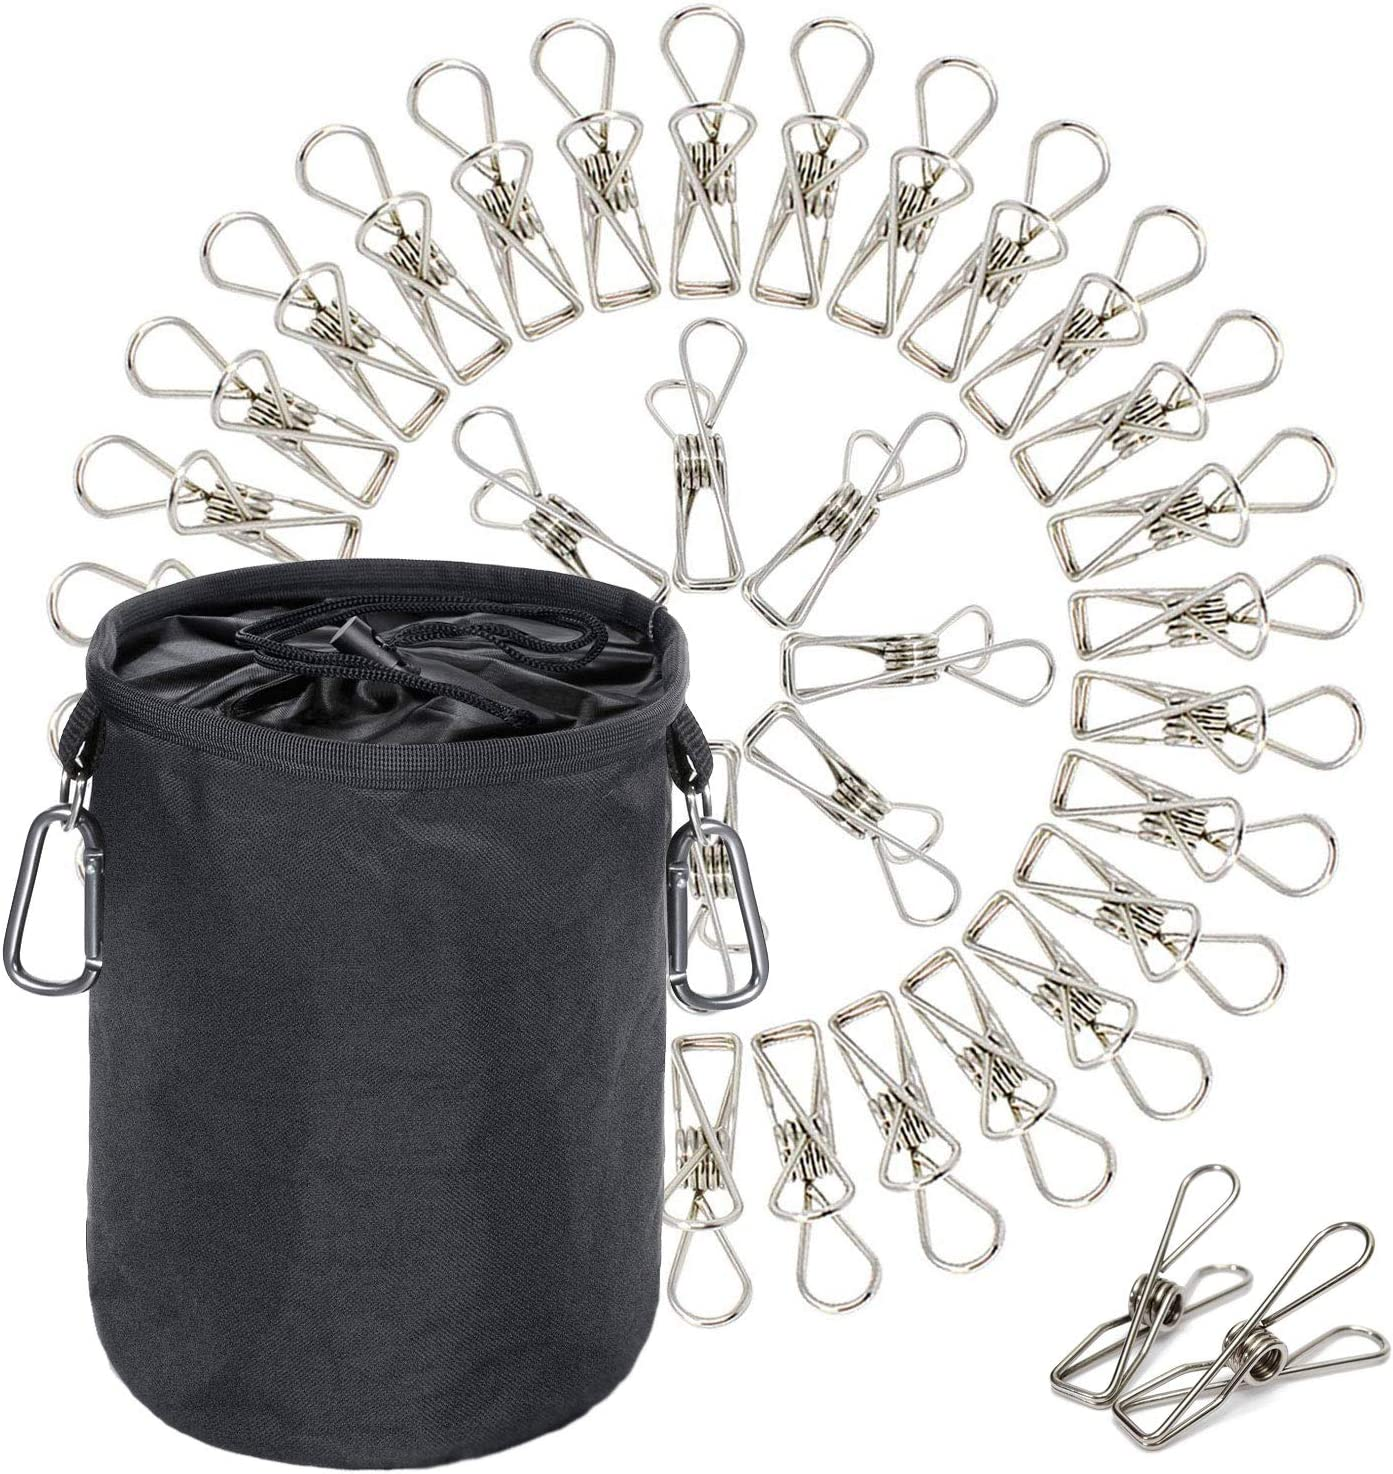 Clothes Laundry Metal Clothepins and Bag with Hanger Clips | Stainless steel Pins Hanging Windproof Against Rust for Outdoor, Home, Kitchen, Bathroom, Garden, Balcony | 60 PACK Pegs and Bag - MEGON